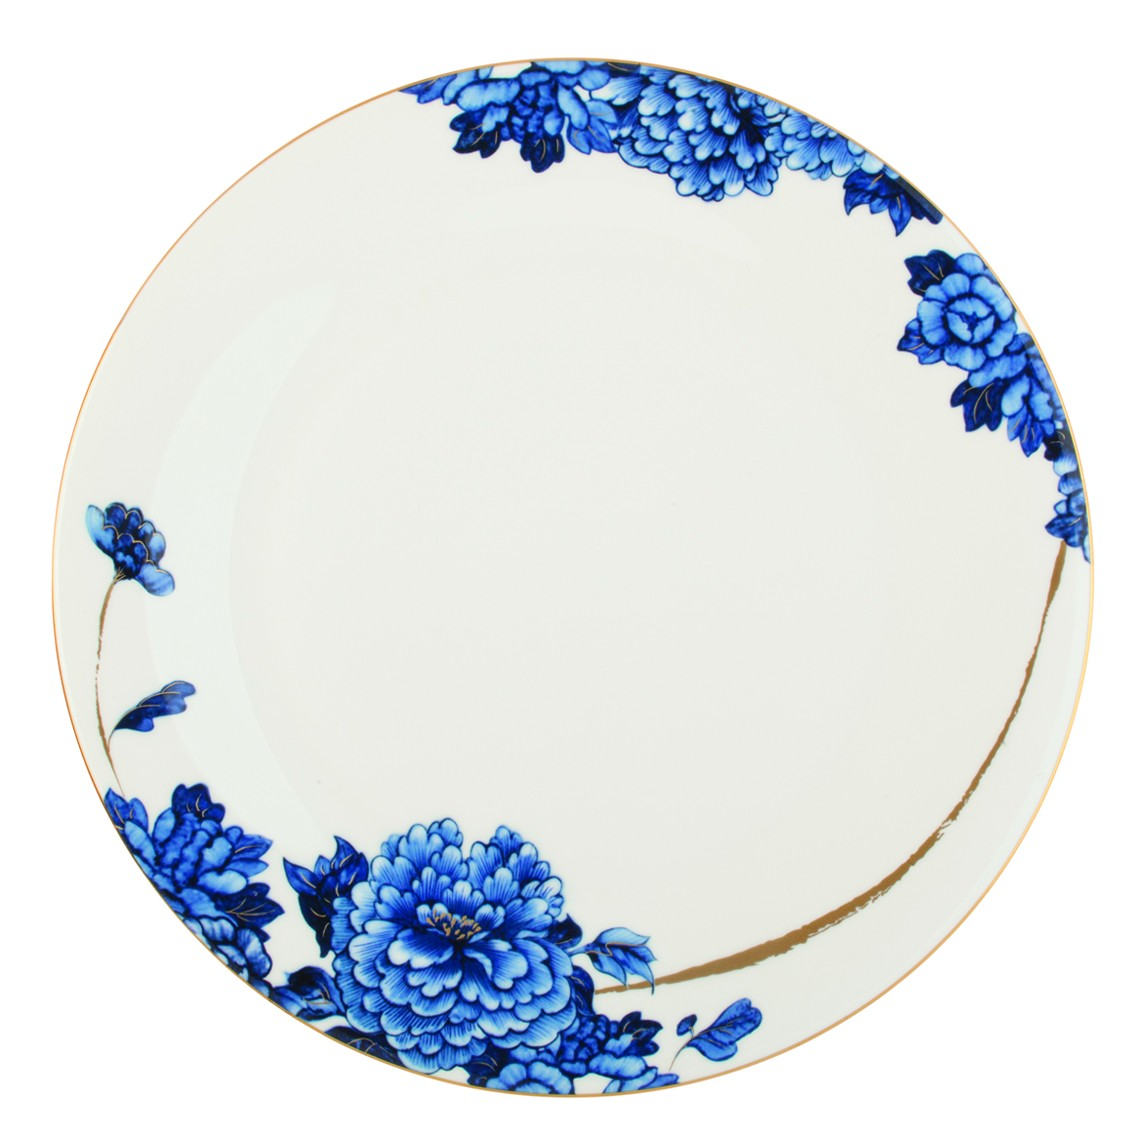 Prouna Emperor Flower Round Platter / Charger Plate